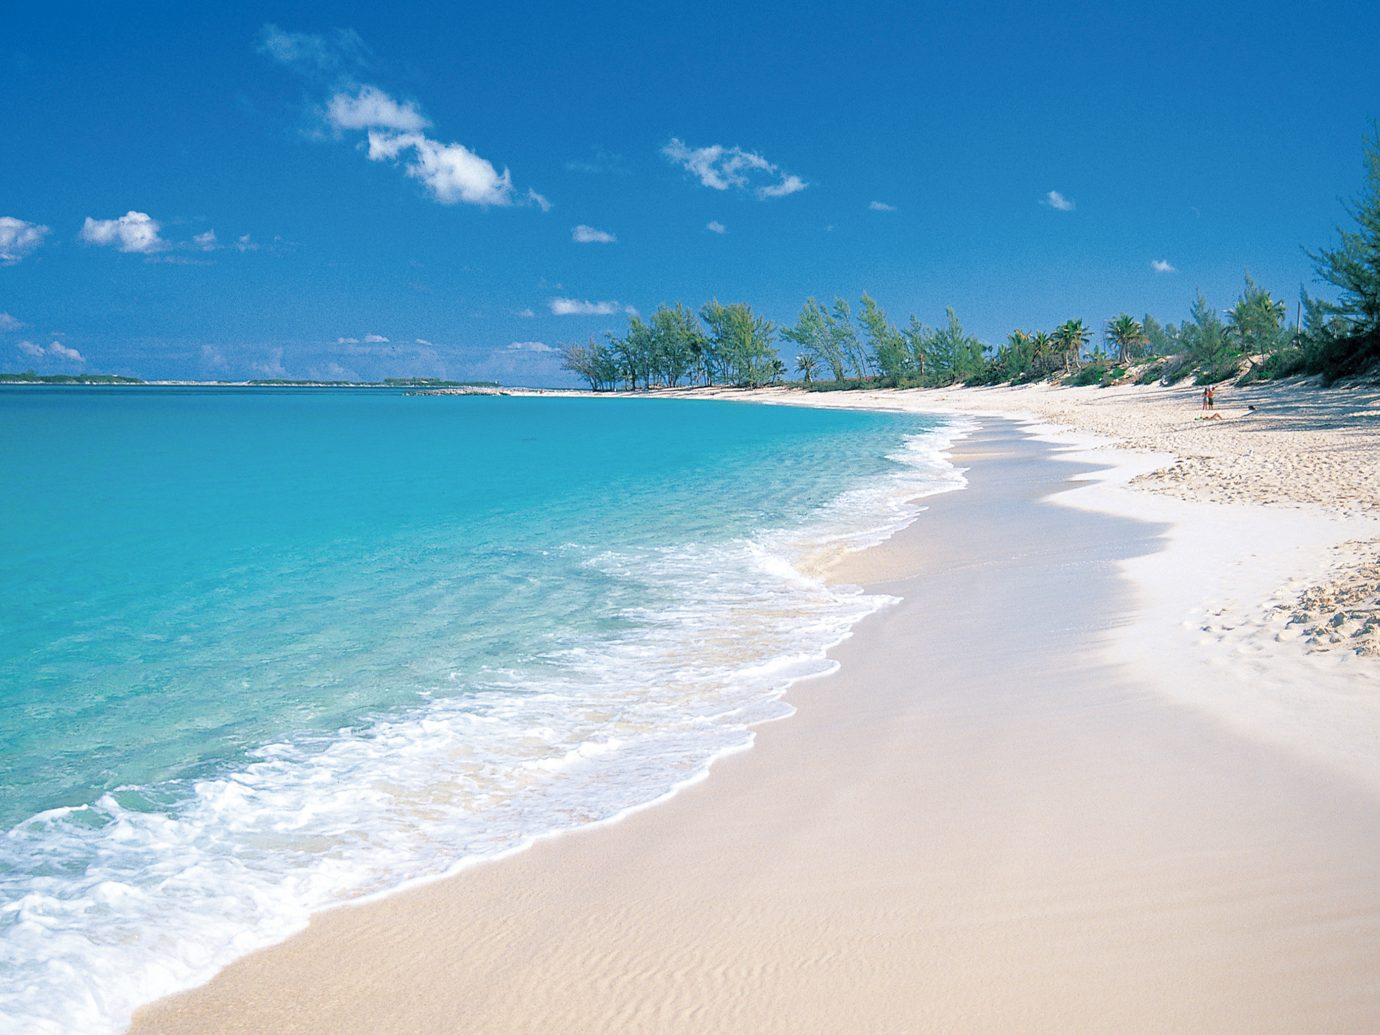 Beach Beachfront Family Grounds Hotels Play Scenic views Trip Ideas outdoor sky water Nature shore Sea body of water Ocean horizon sand Coast vacation wave wind wave caribbean cape bay sunlight Lagoon tropics sandy day